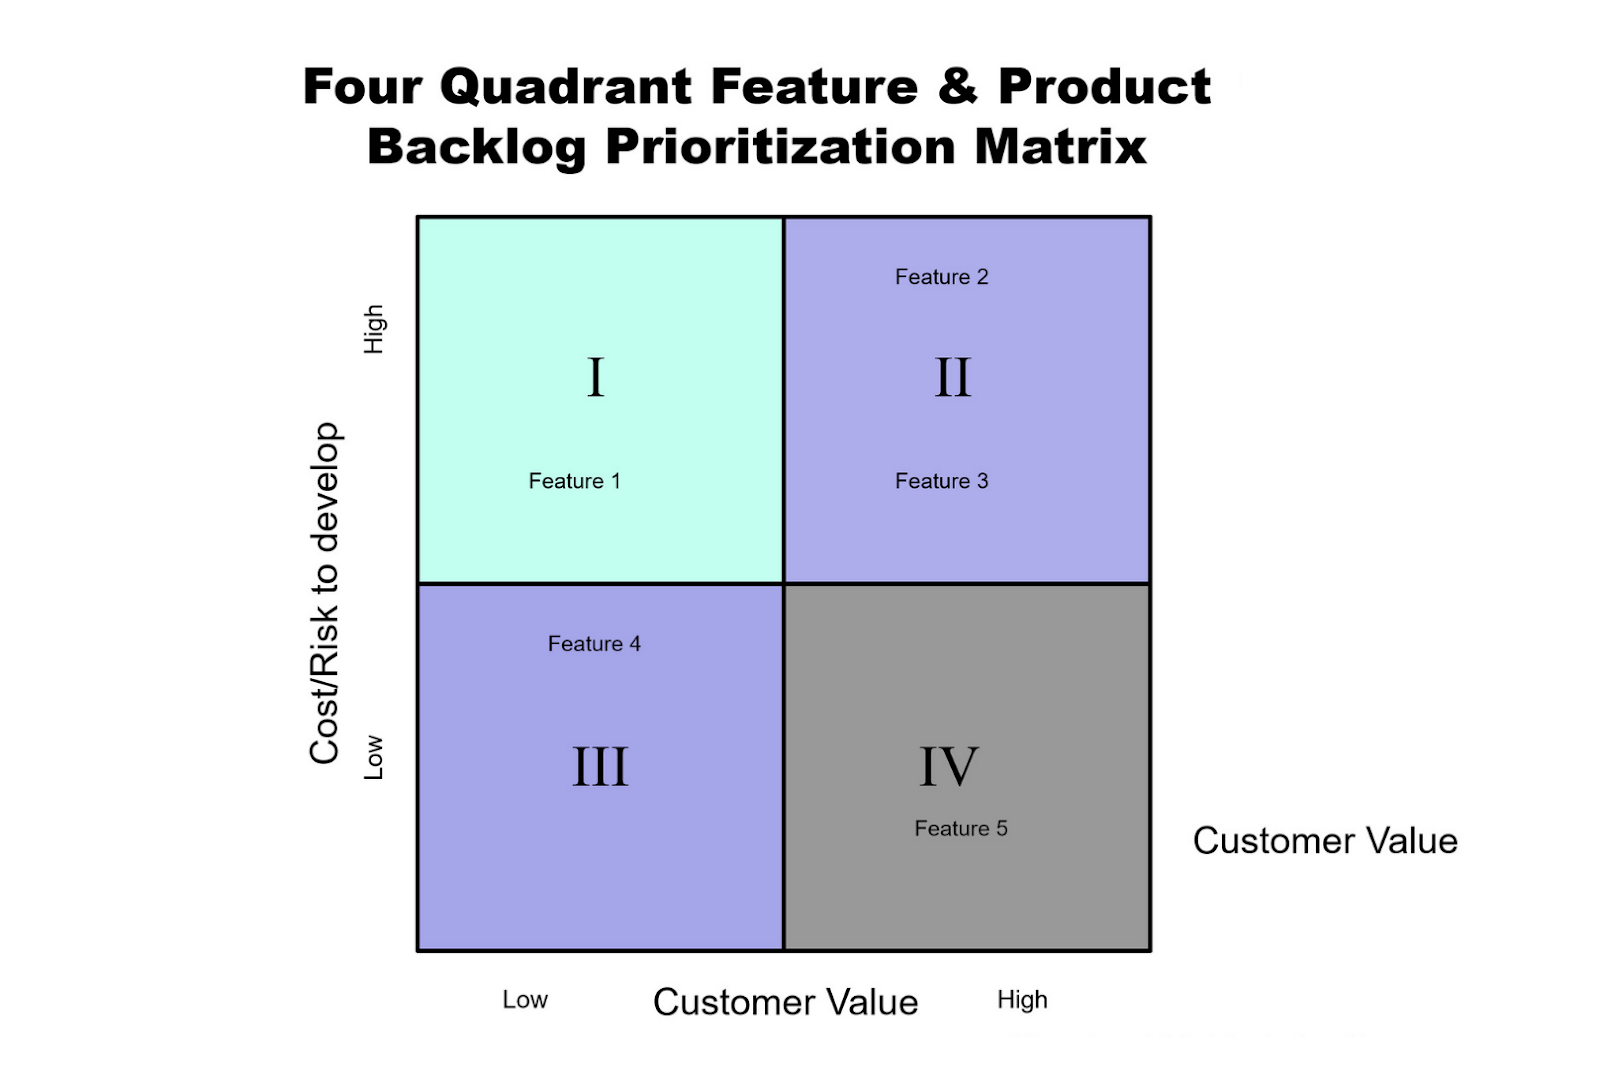 prioritizing the right product features